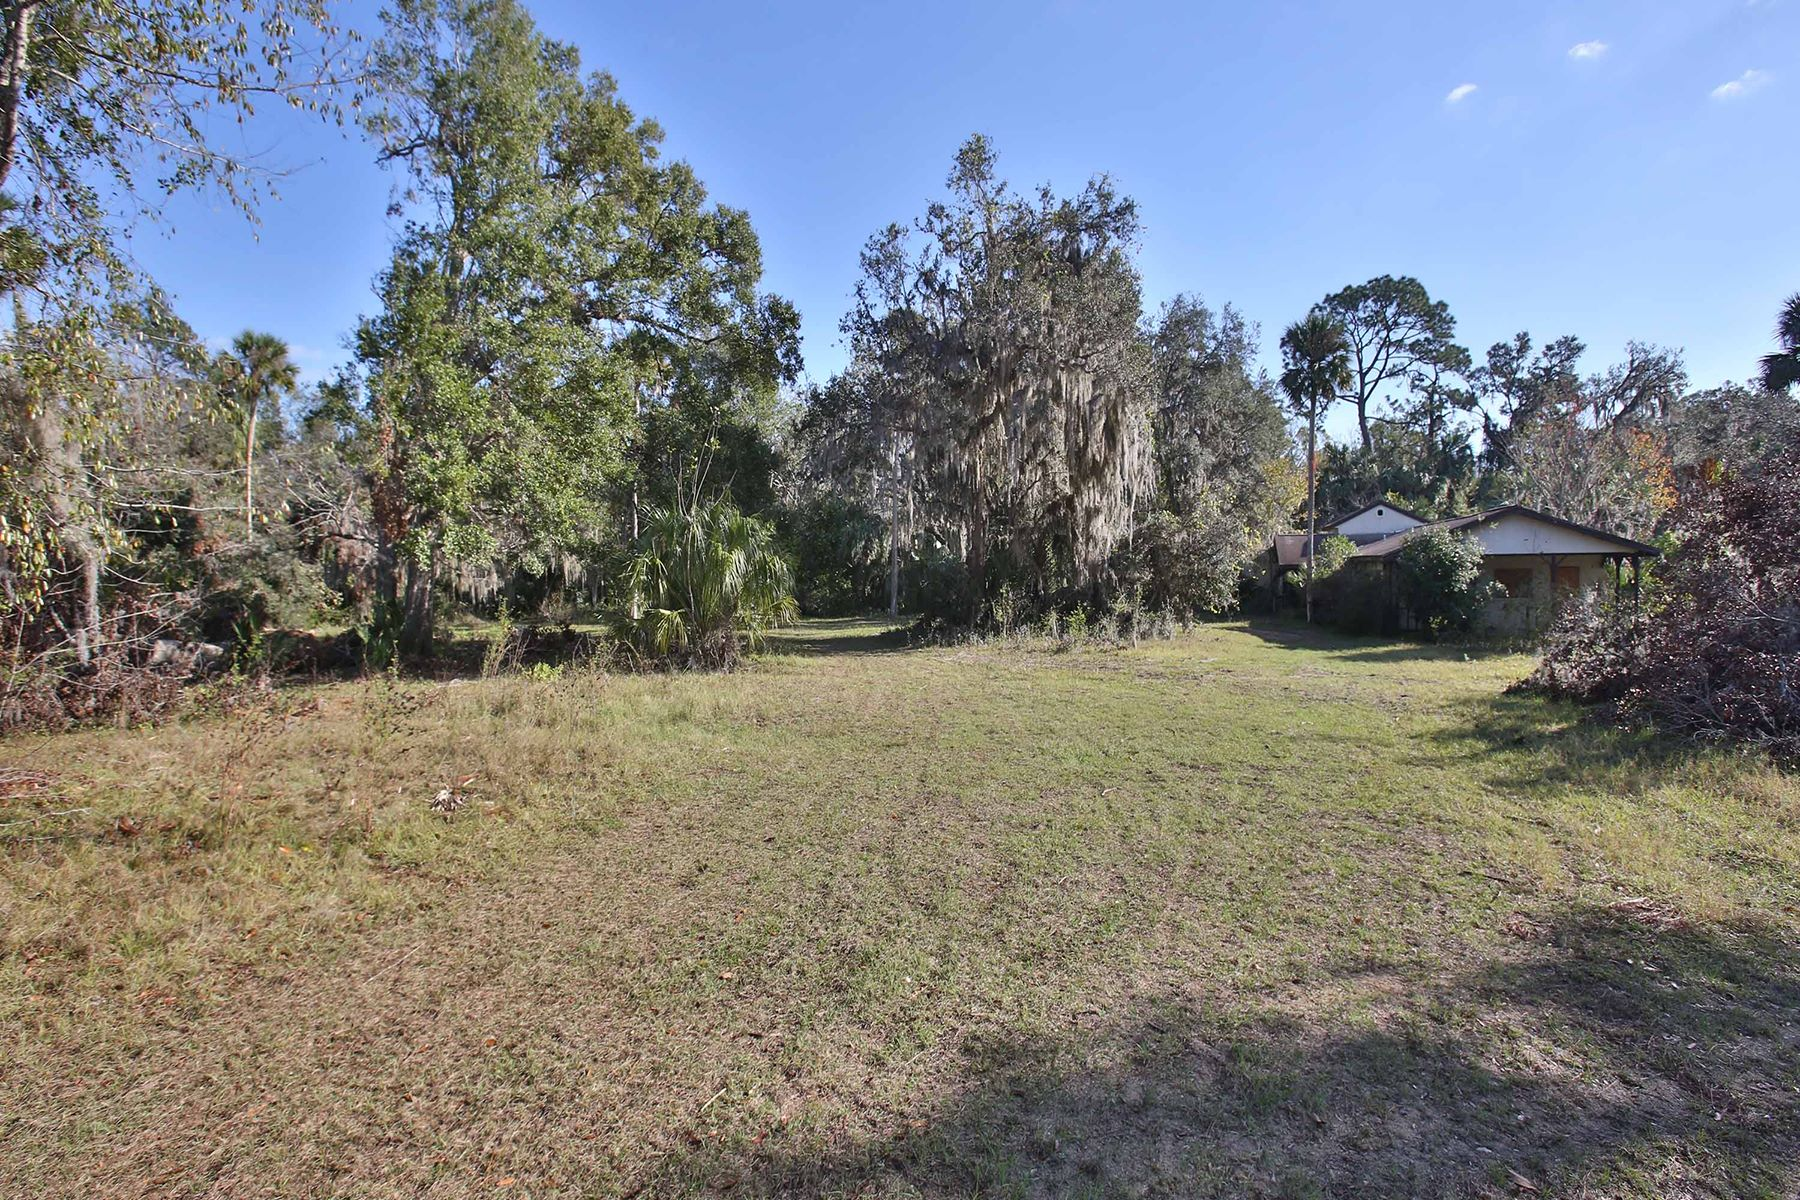 سكني الآخرين للـ Sale في SPRUCE CREEK AND THE BEACHES 6015 Spruce Creek Rd Port Orange, Florida, 32127 United States